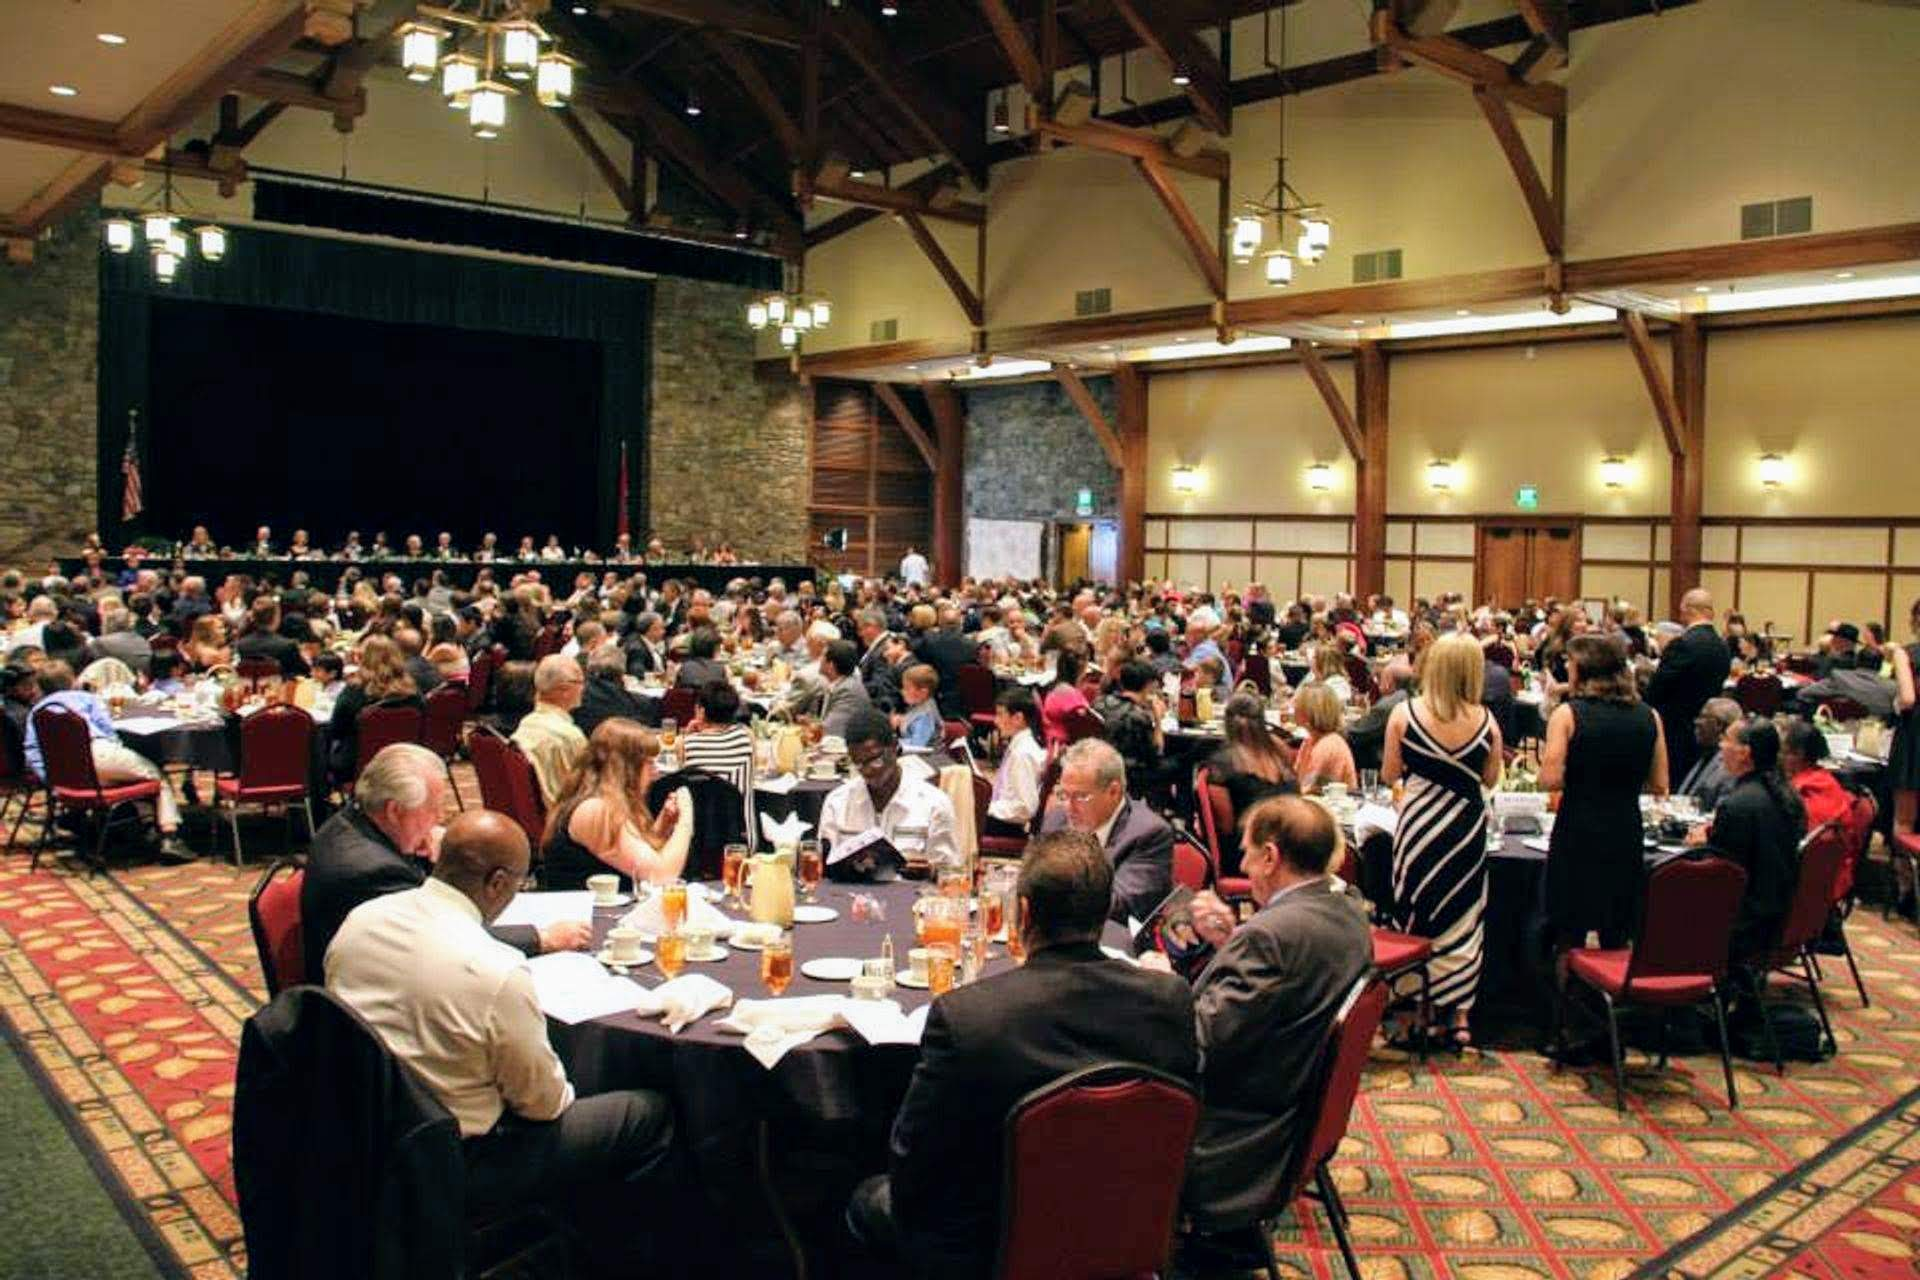 AWARD DINNER/CEREMONY